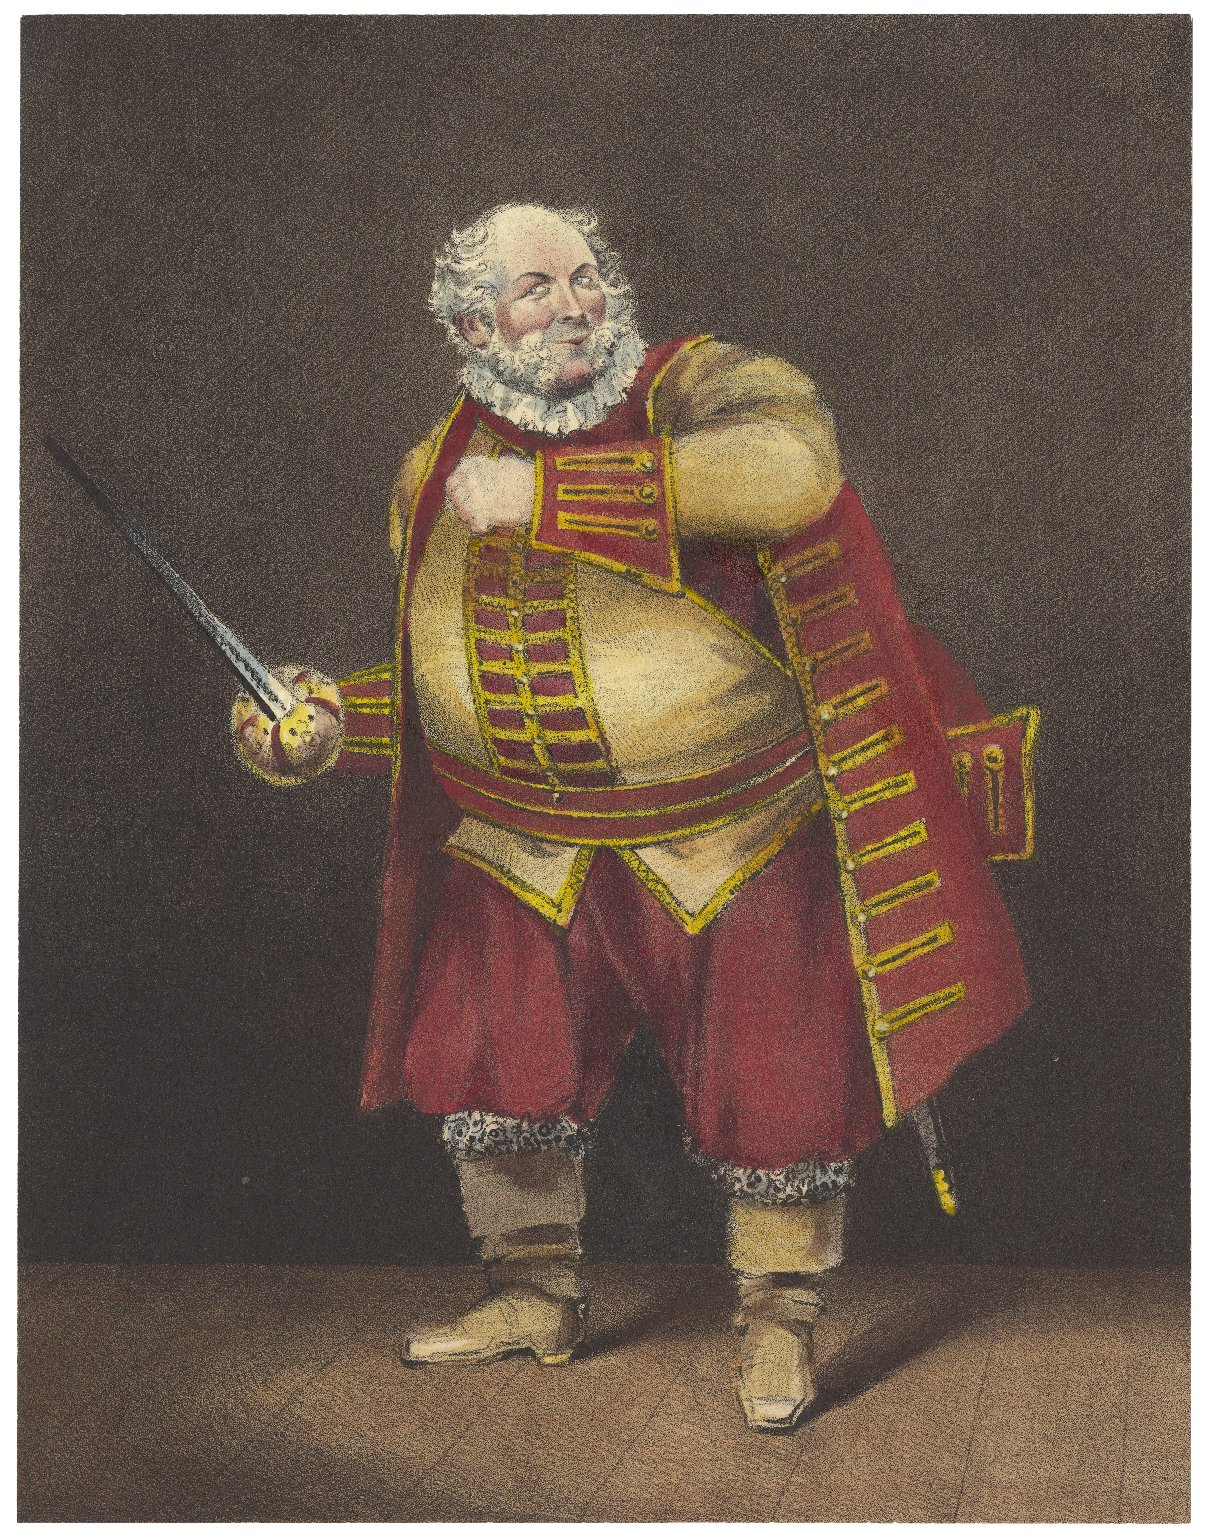 Mr. Elliston as Sir John Falstaff [in pt. 1 of Shakespeare's] Henry IV act 2 scene IV ... [graphic] / drawn & engraved from life by John William Gear.